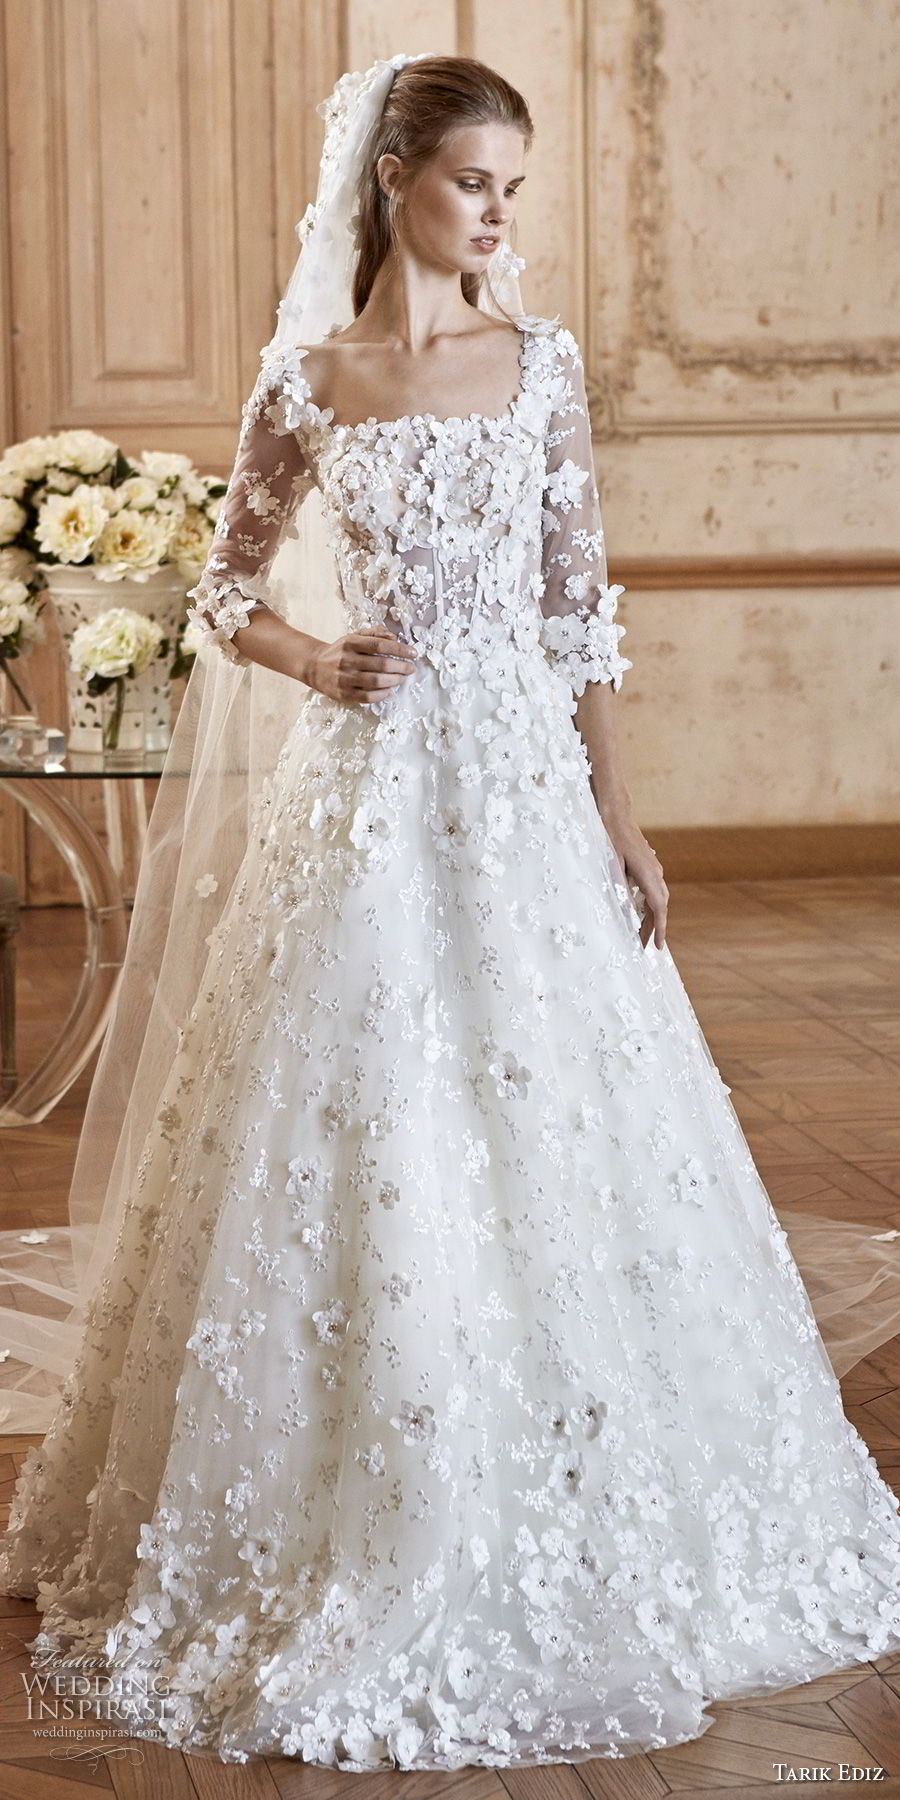 tarik ediz 2017 bridal three quarter sleeves square neckline full embellishment romantic a line wedding dress (20) mv